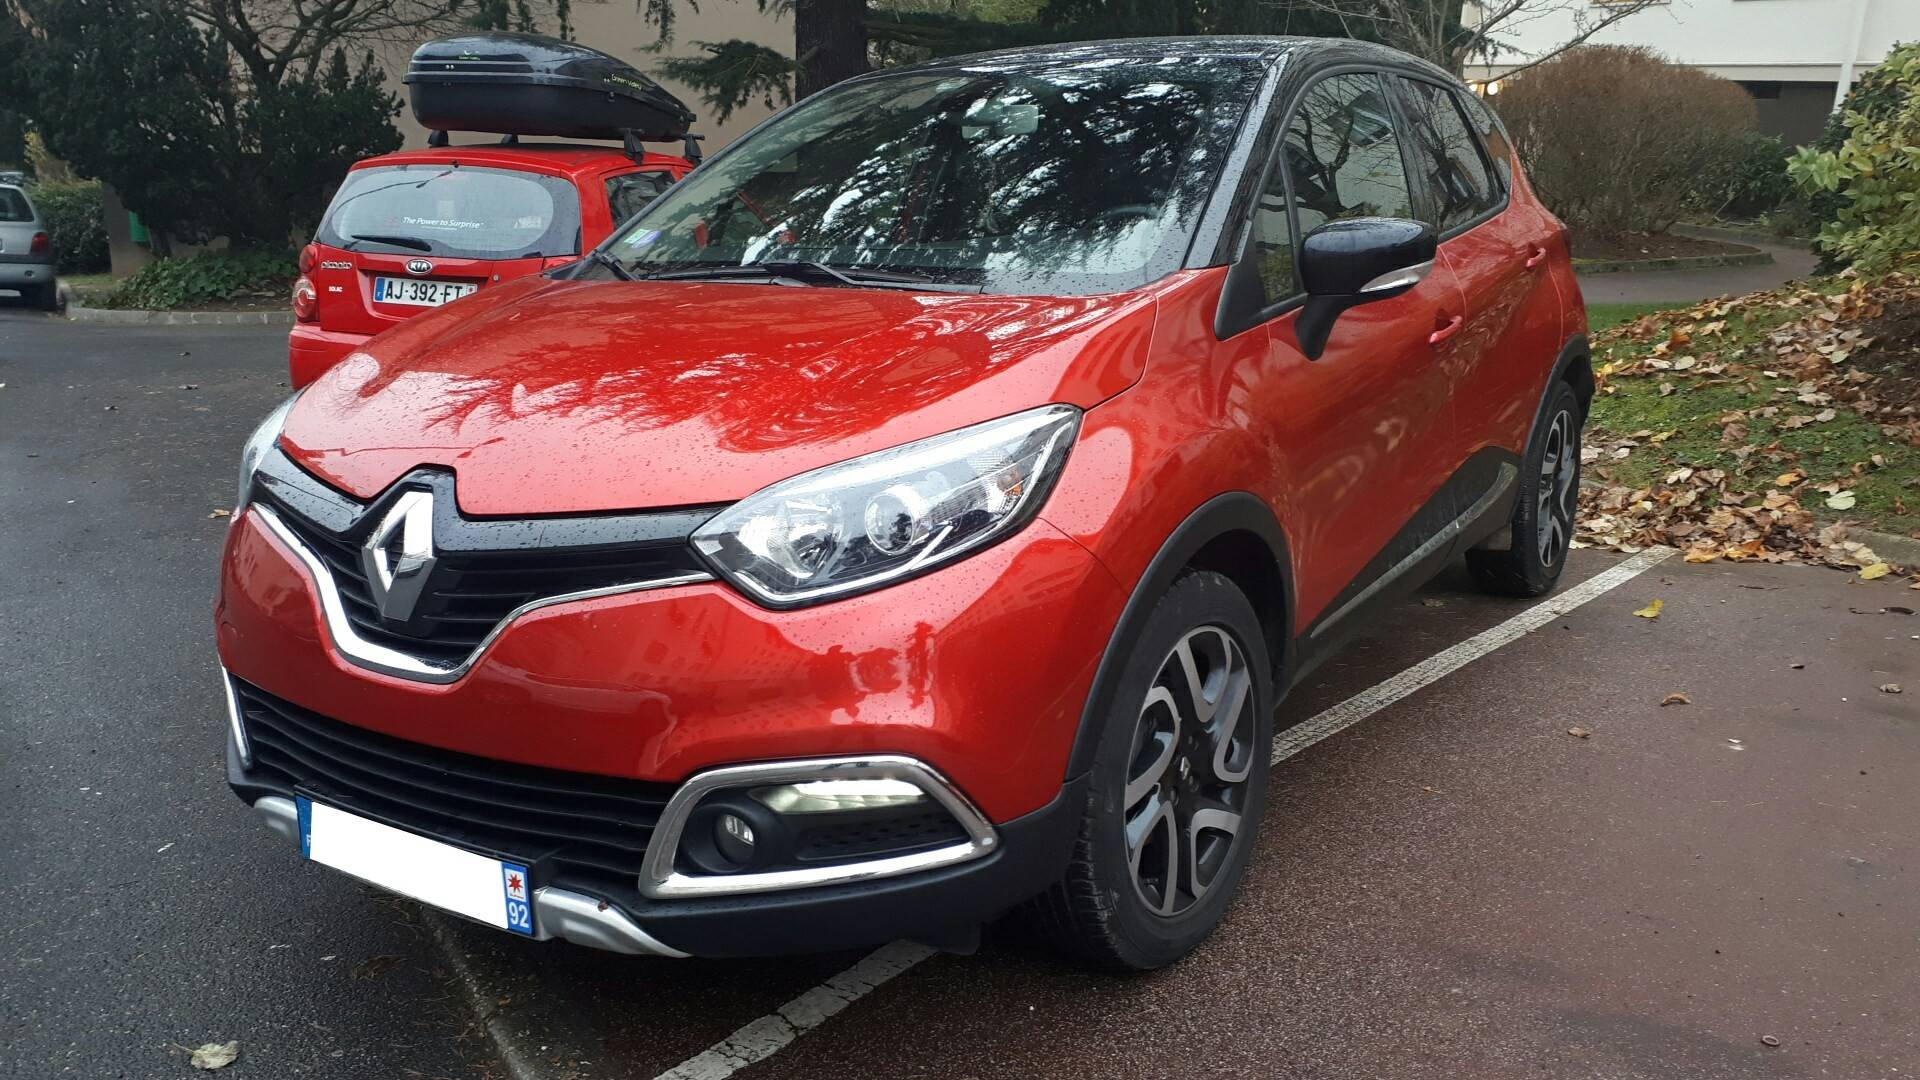 renault captur d 39 occasion 1 2 tce 120 helly hansen edc bva cachan cedex carizy. Black Bedroom Furniture Sets. Home Design Ideas